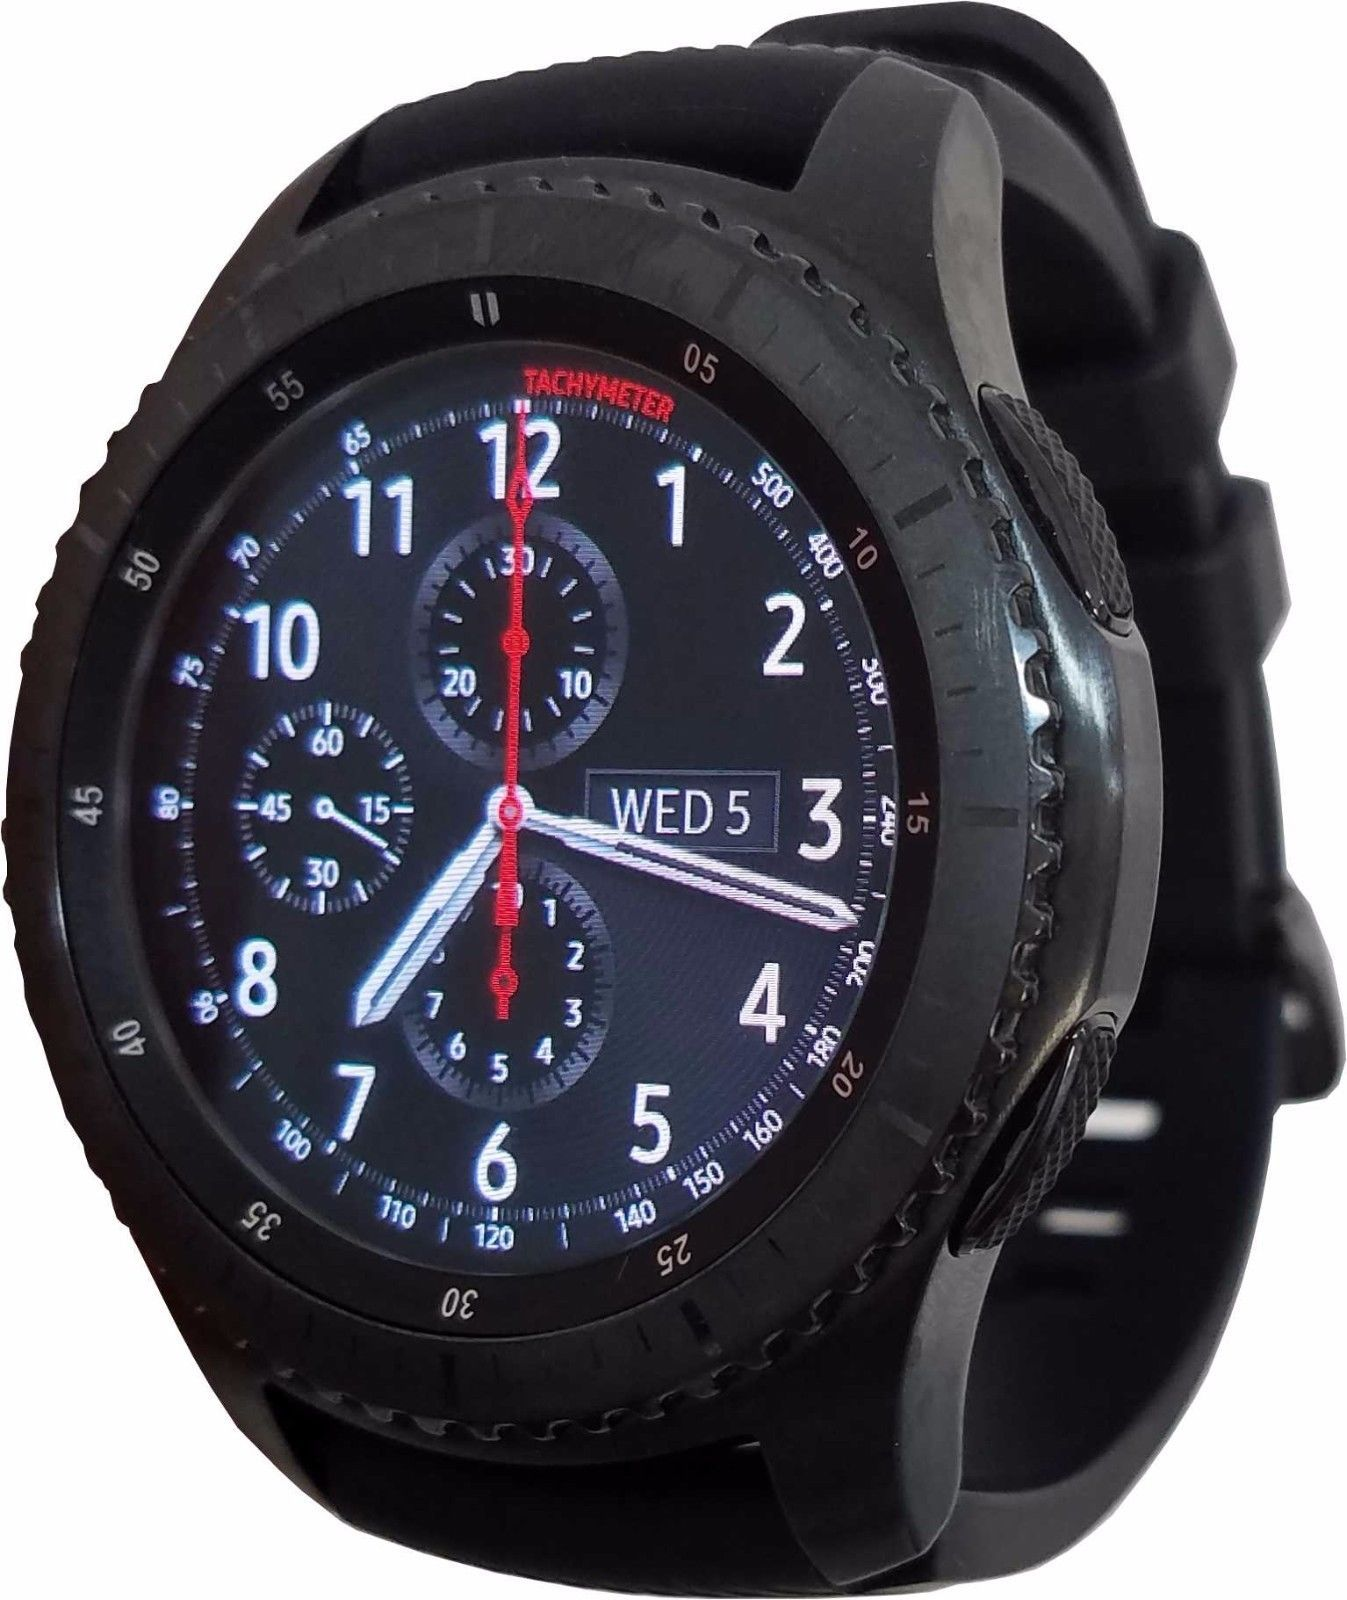 Highly Rated Popular Samsung Galaxy Gear S3 Frontier 46mm Watch Stainless Steel Case Black Band R760 Samsung Watches Gear S3 Frontier Best Smart Watches